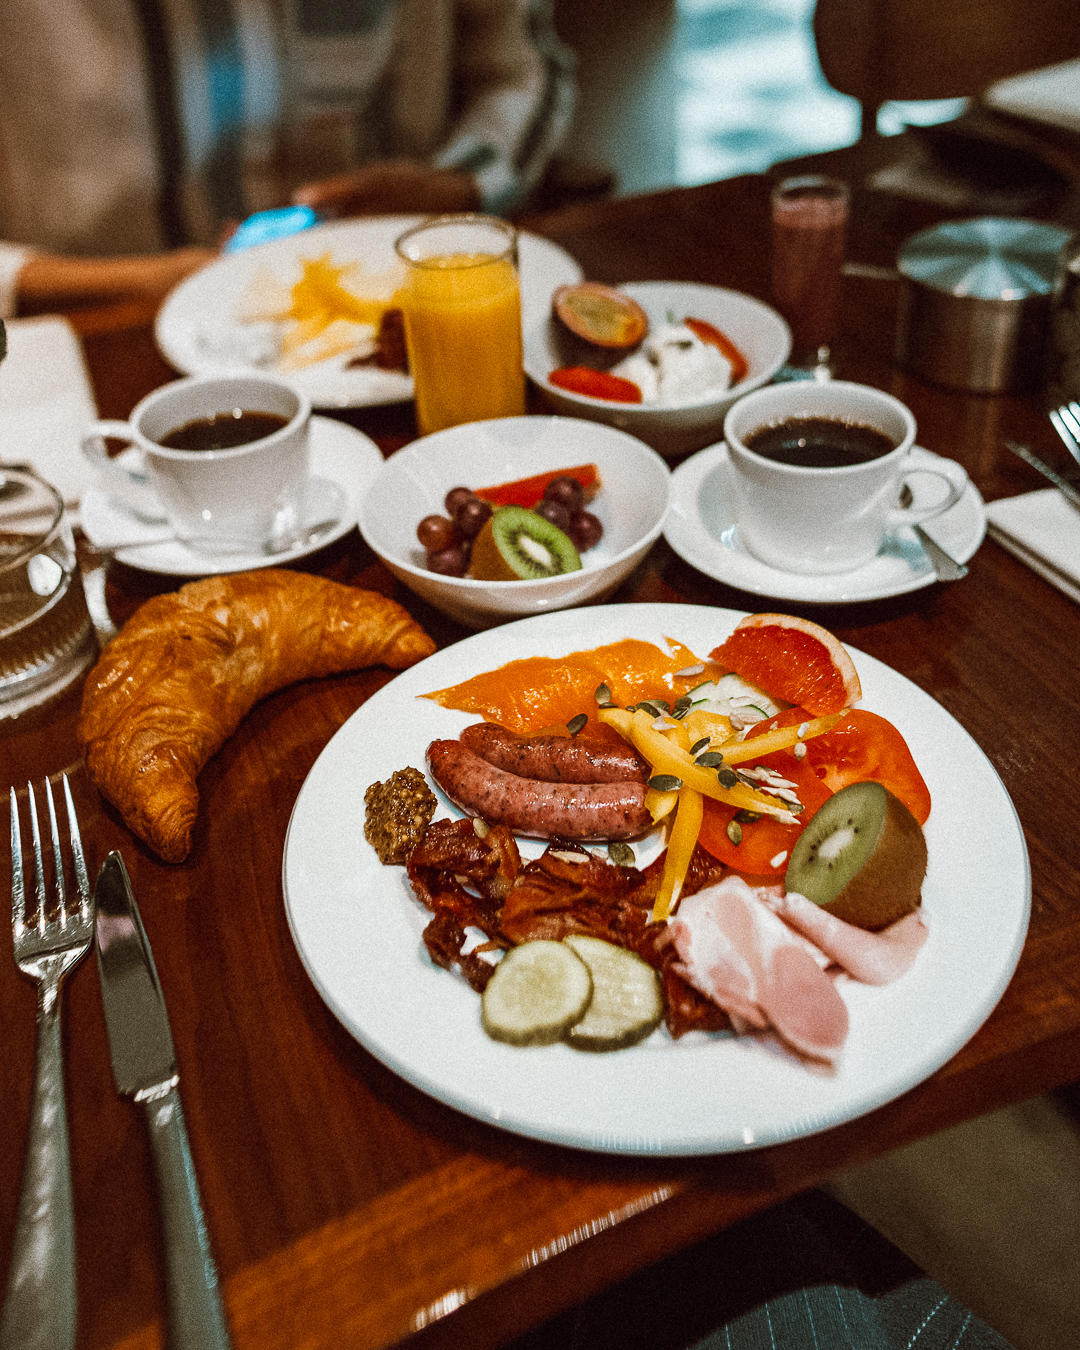 ◎ The lamb sausage was my favourite part of the breakfast